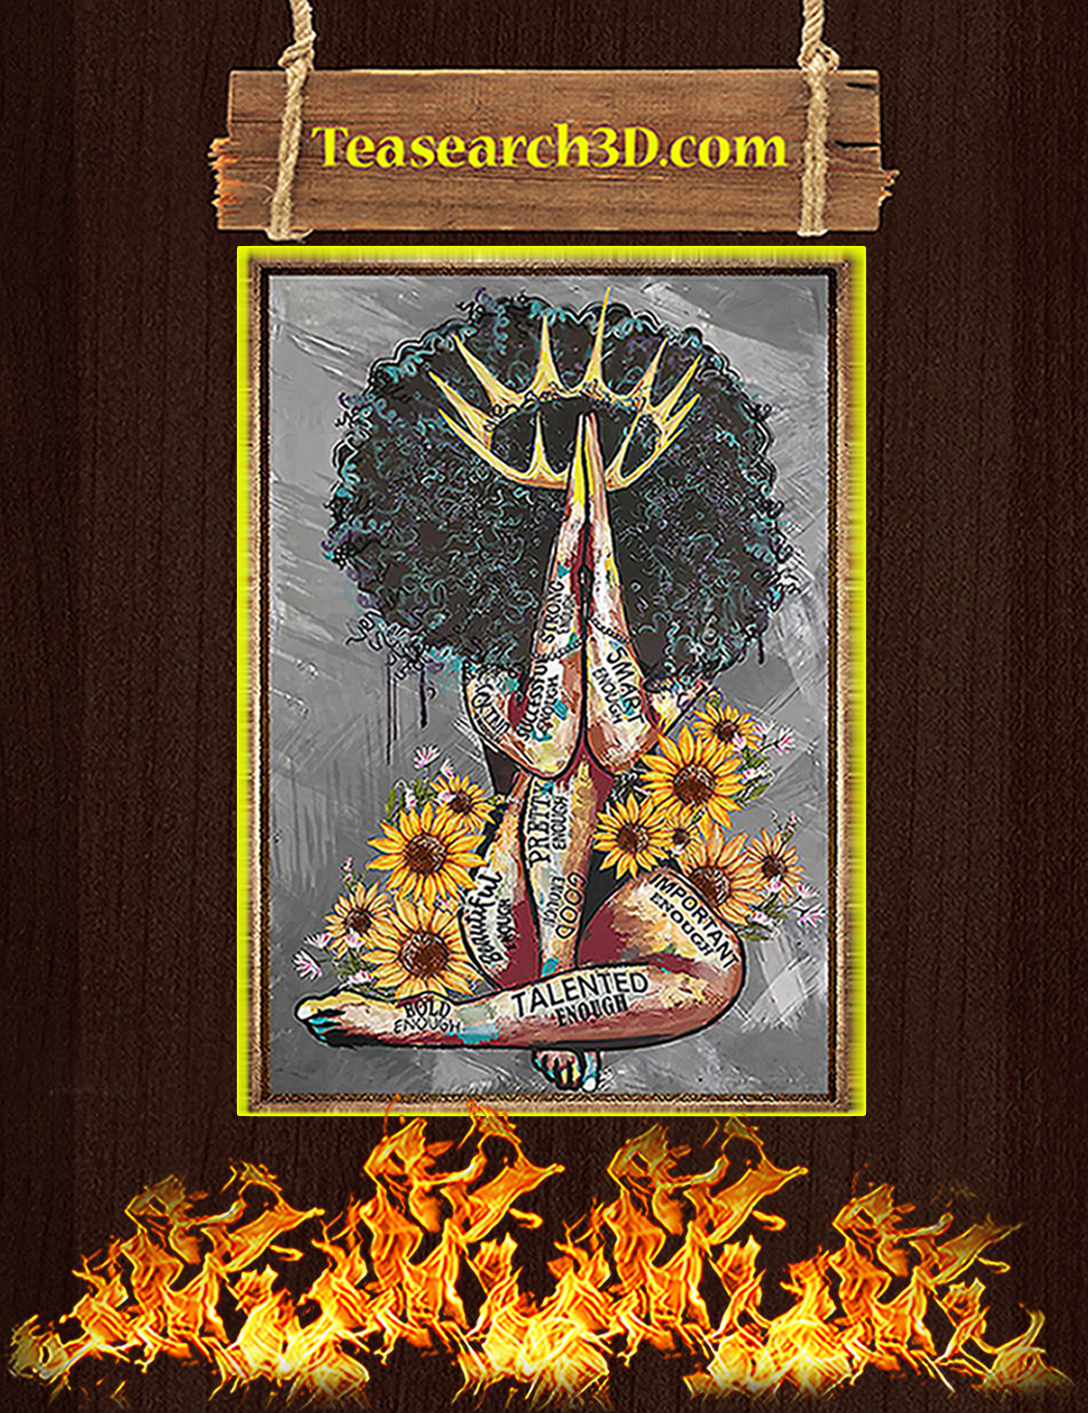 Black queen with sunflowers poster A2